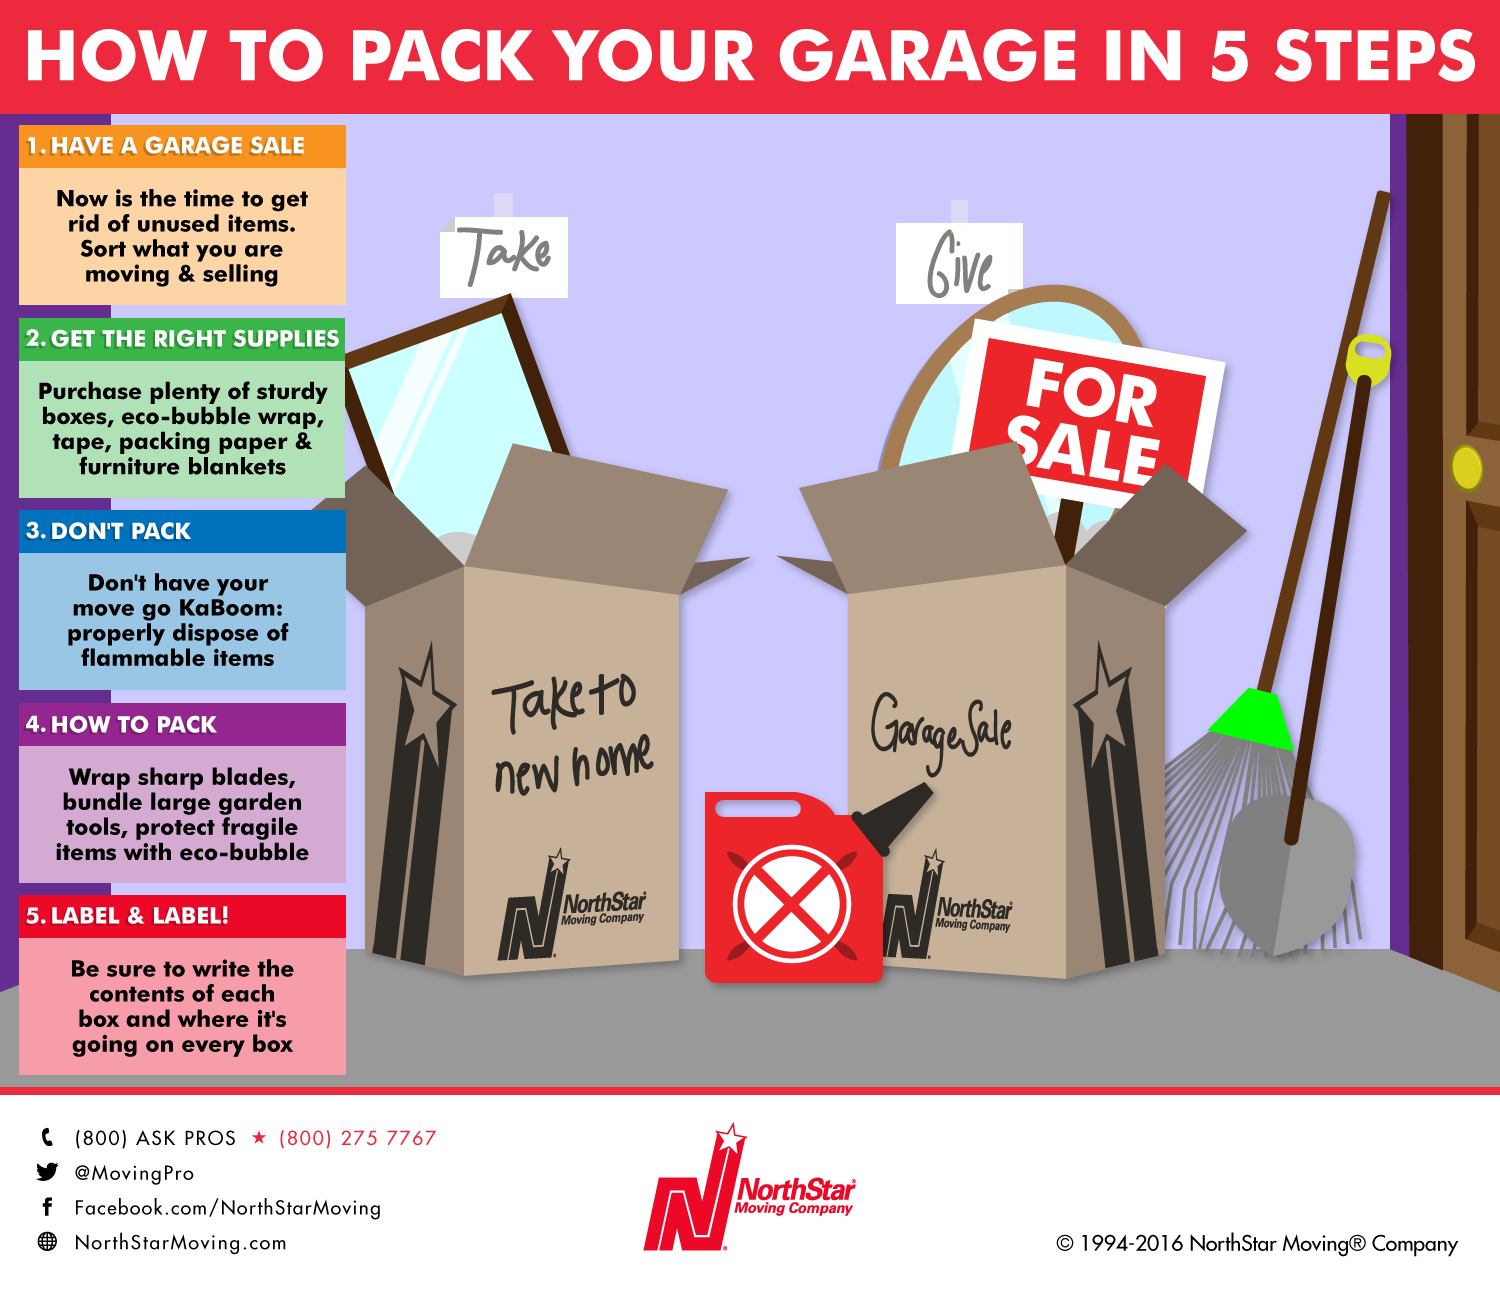 How-to-Pack-Your-Garage-v4.1